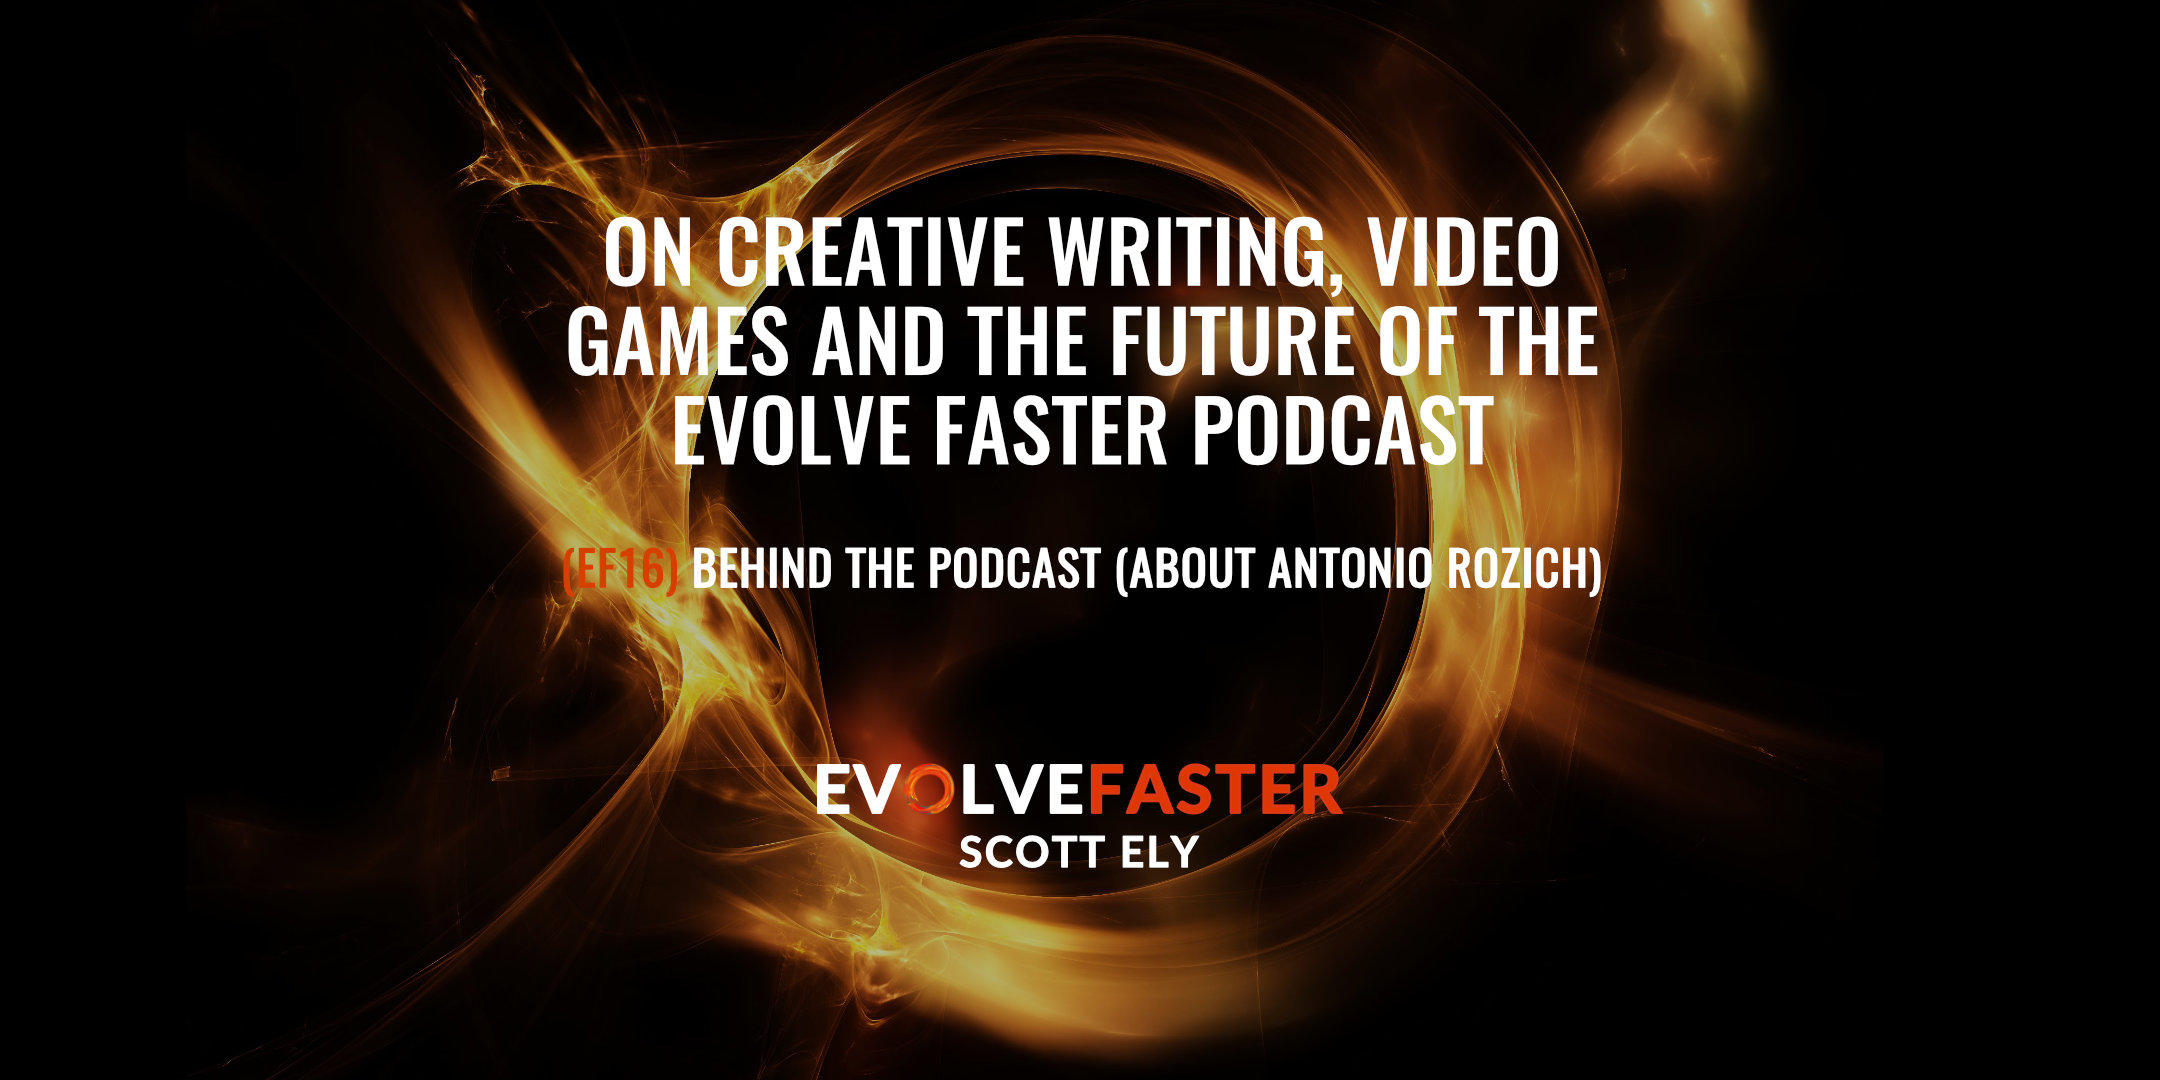 (EF16) BTP: On Creative Writing, Video Games and the Future of the Evolve Faster Podcast (About Antonio Rozich)